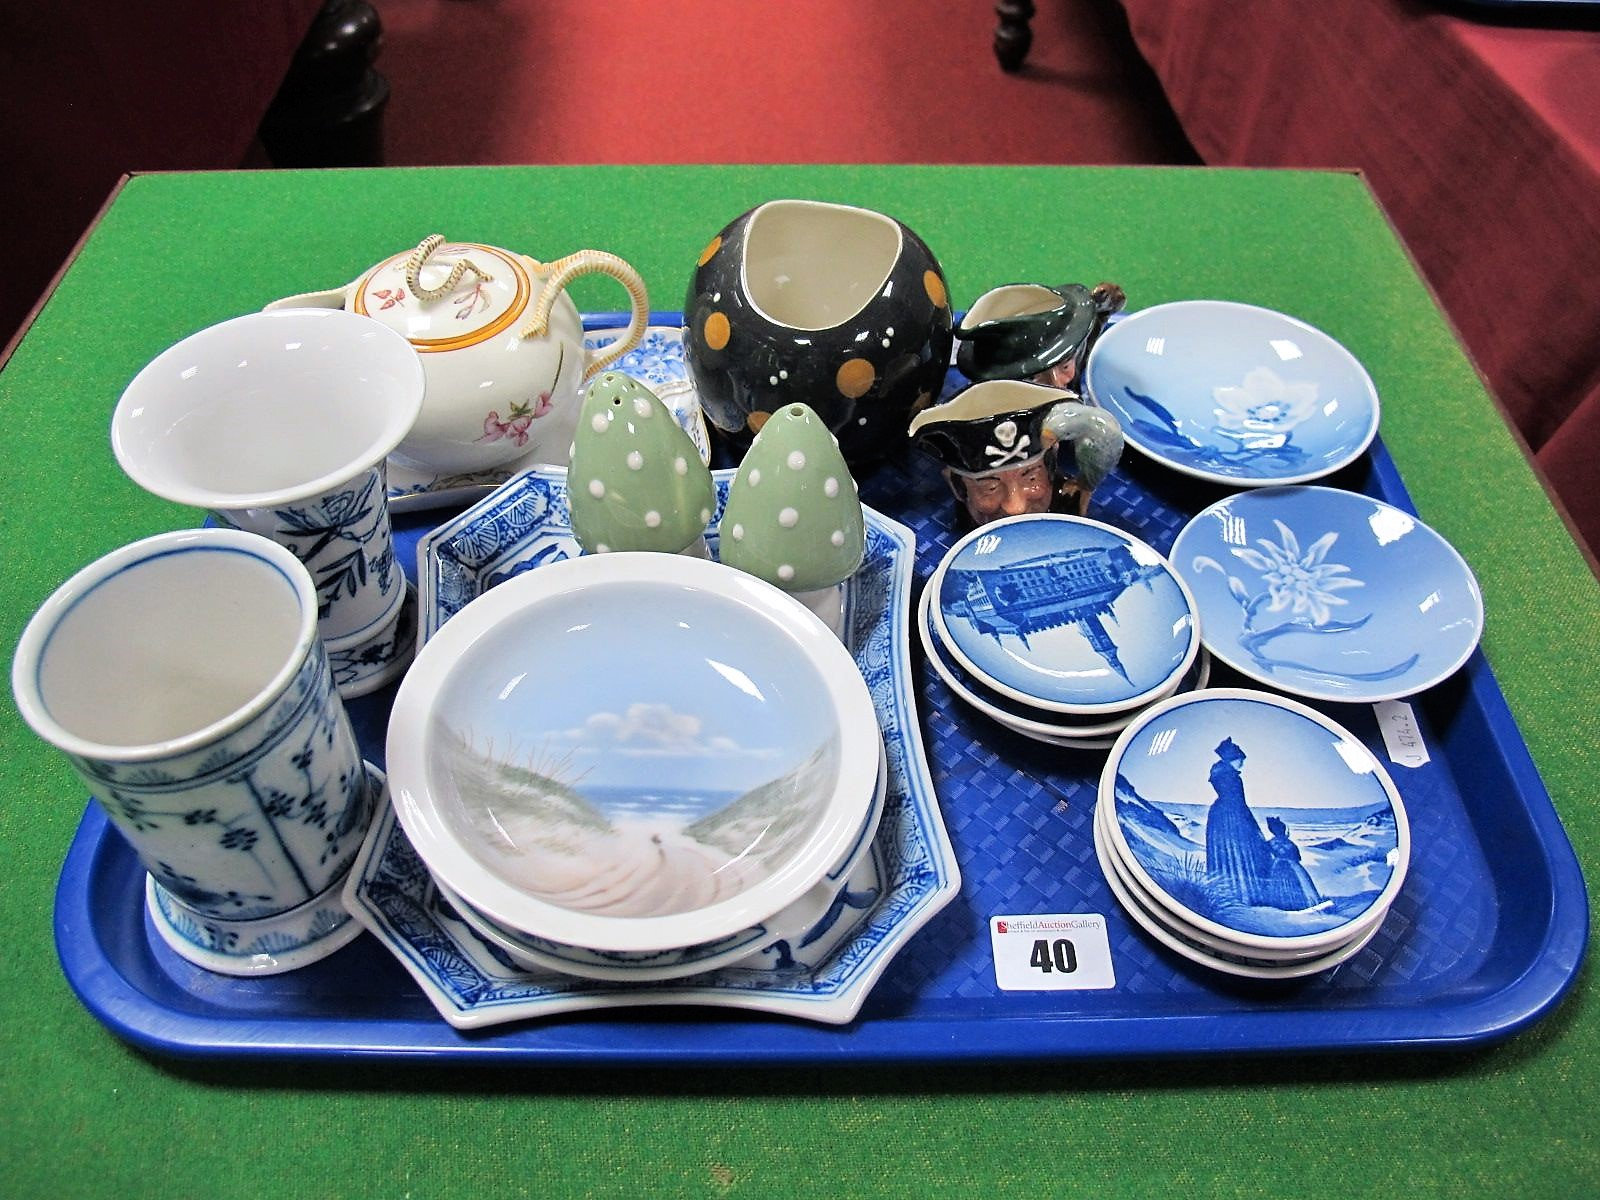 Lot 40 - Royal Copenhagen Pin Dishes, Continental shallow trays flared vases, cylindrical vase in the style